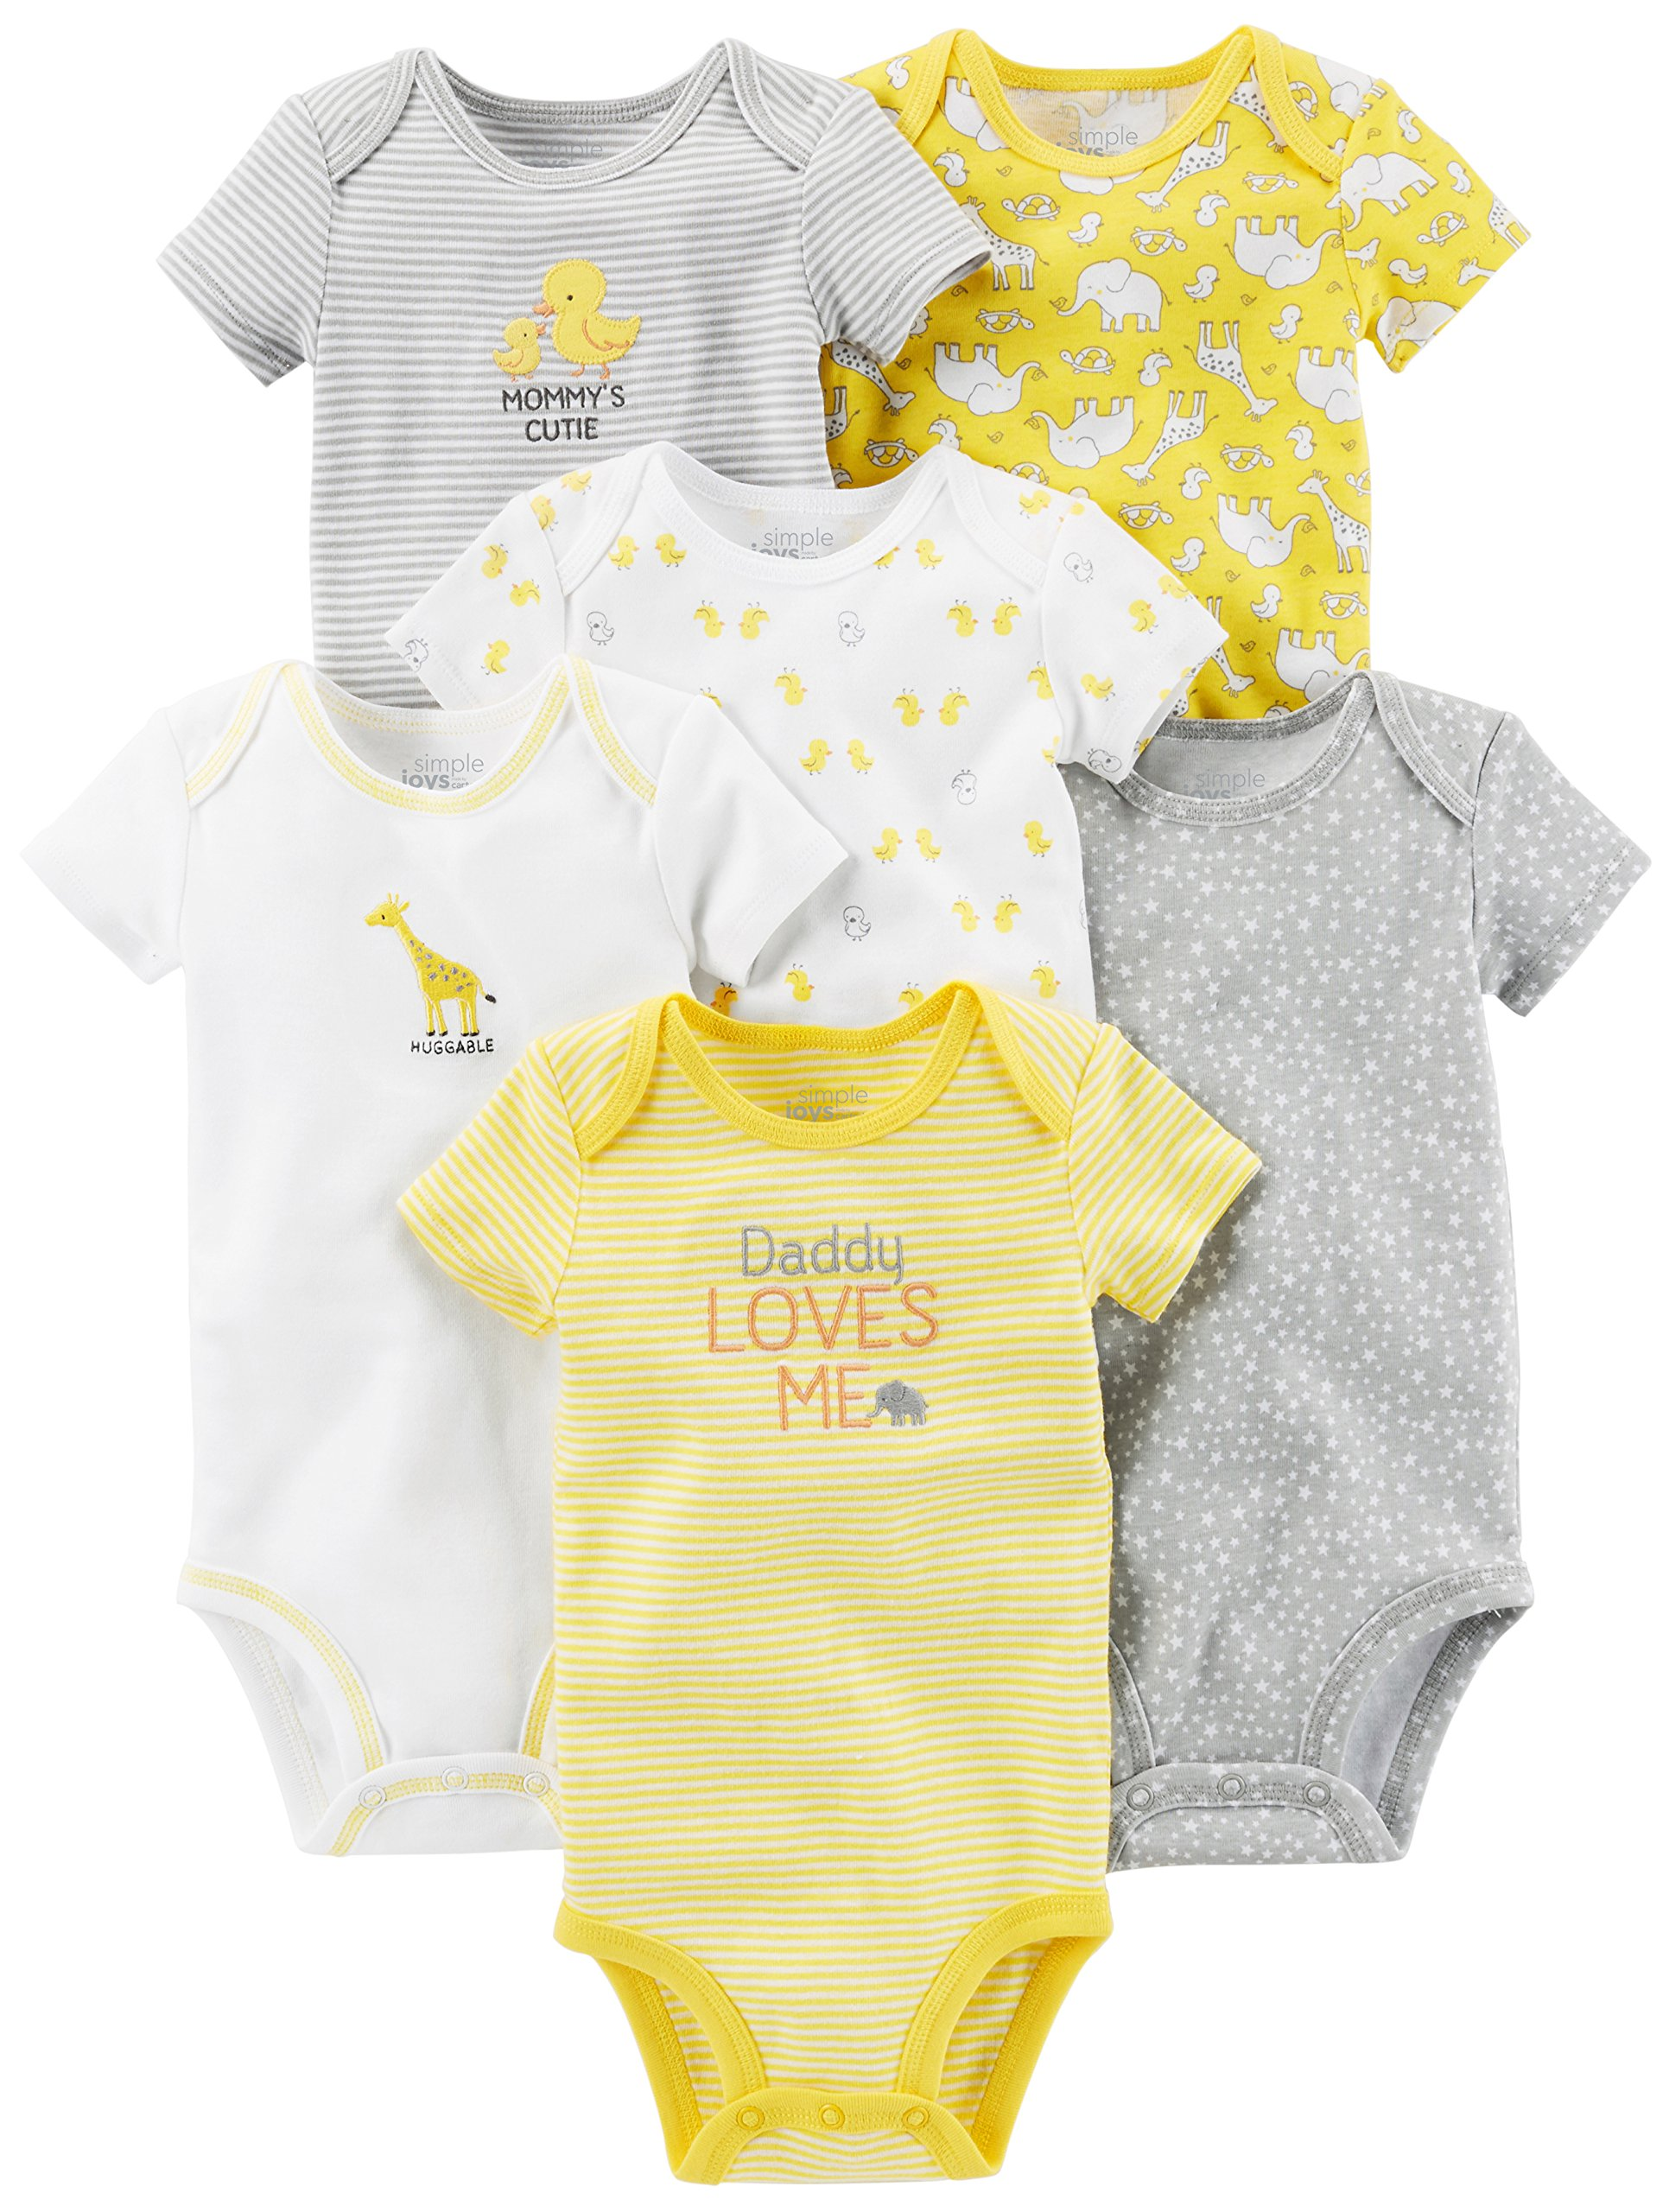 Simple Joys by Carter's Baby 6-Pack Short-Sleeve Bodysuit, Yellow/Grey, 0-3 Months